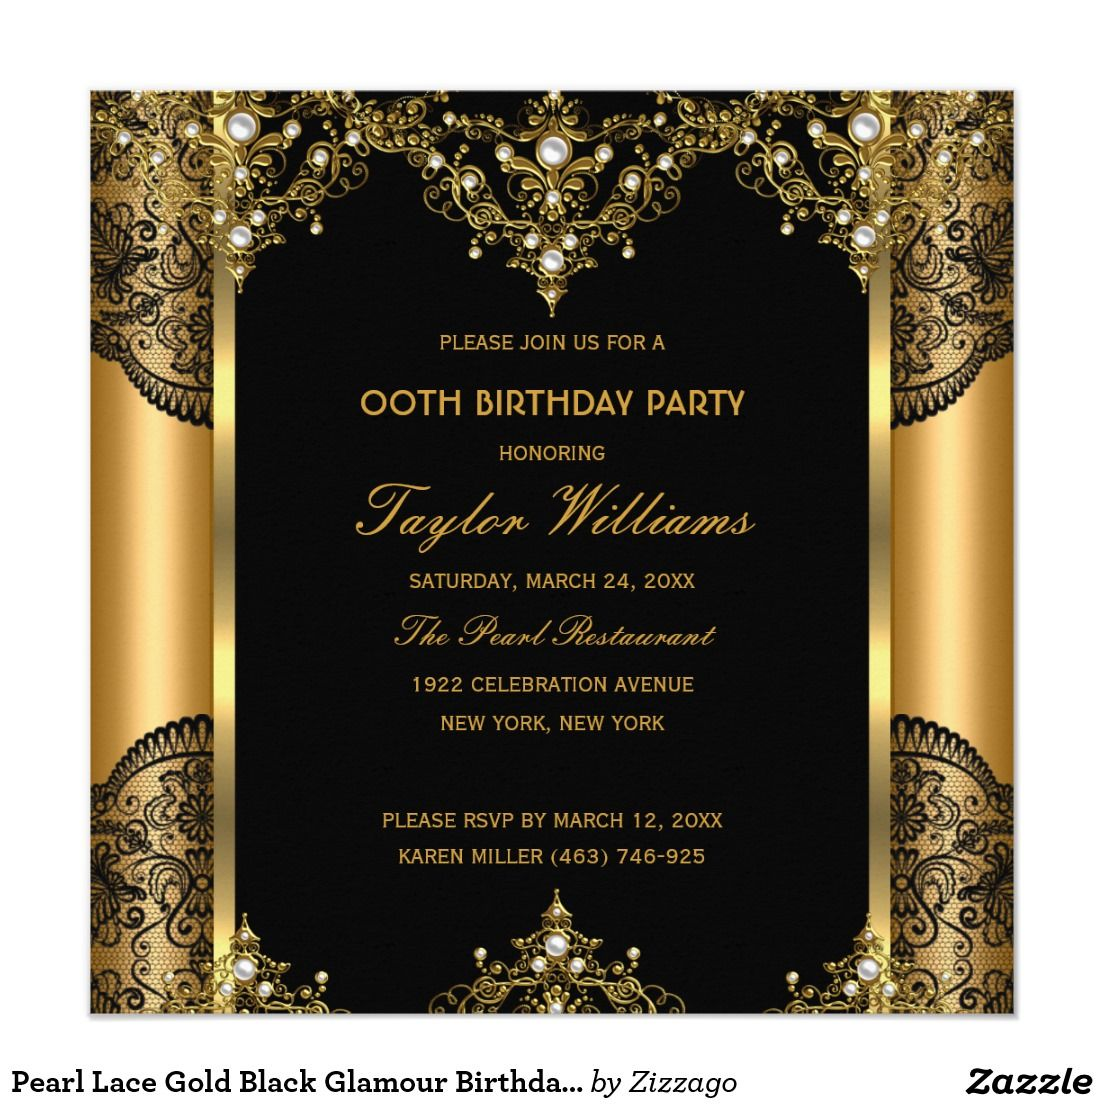 Pearl Lace Gold Black Glamour Birthday Party 2 Card | Birthdays ...